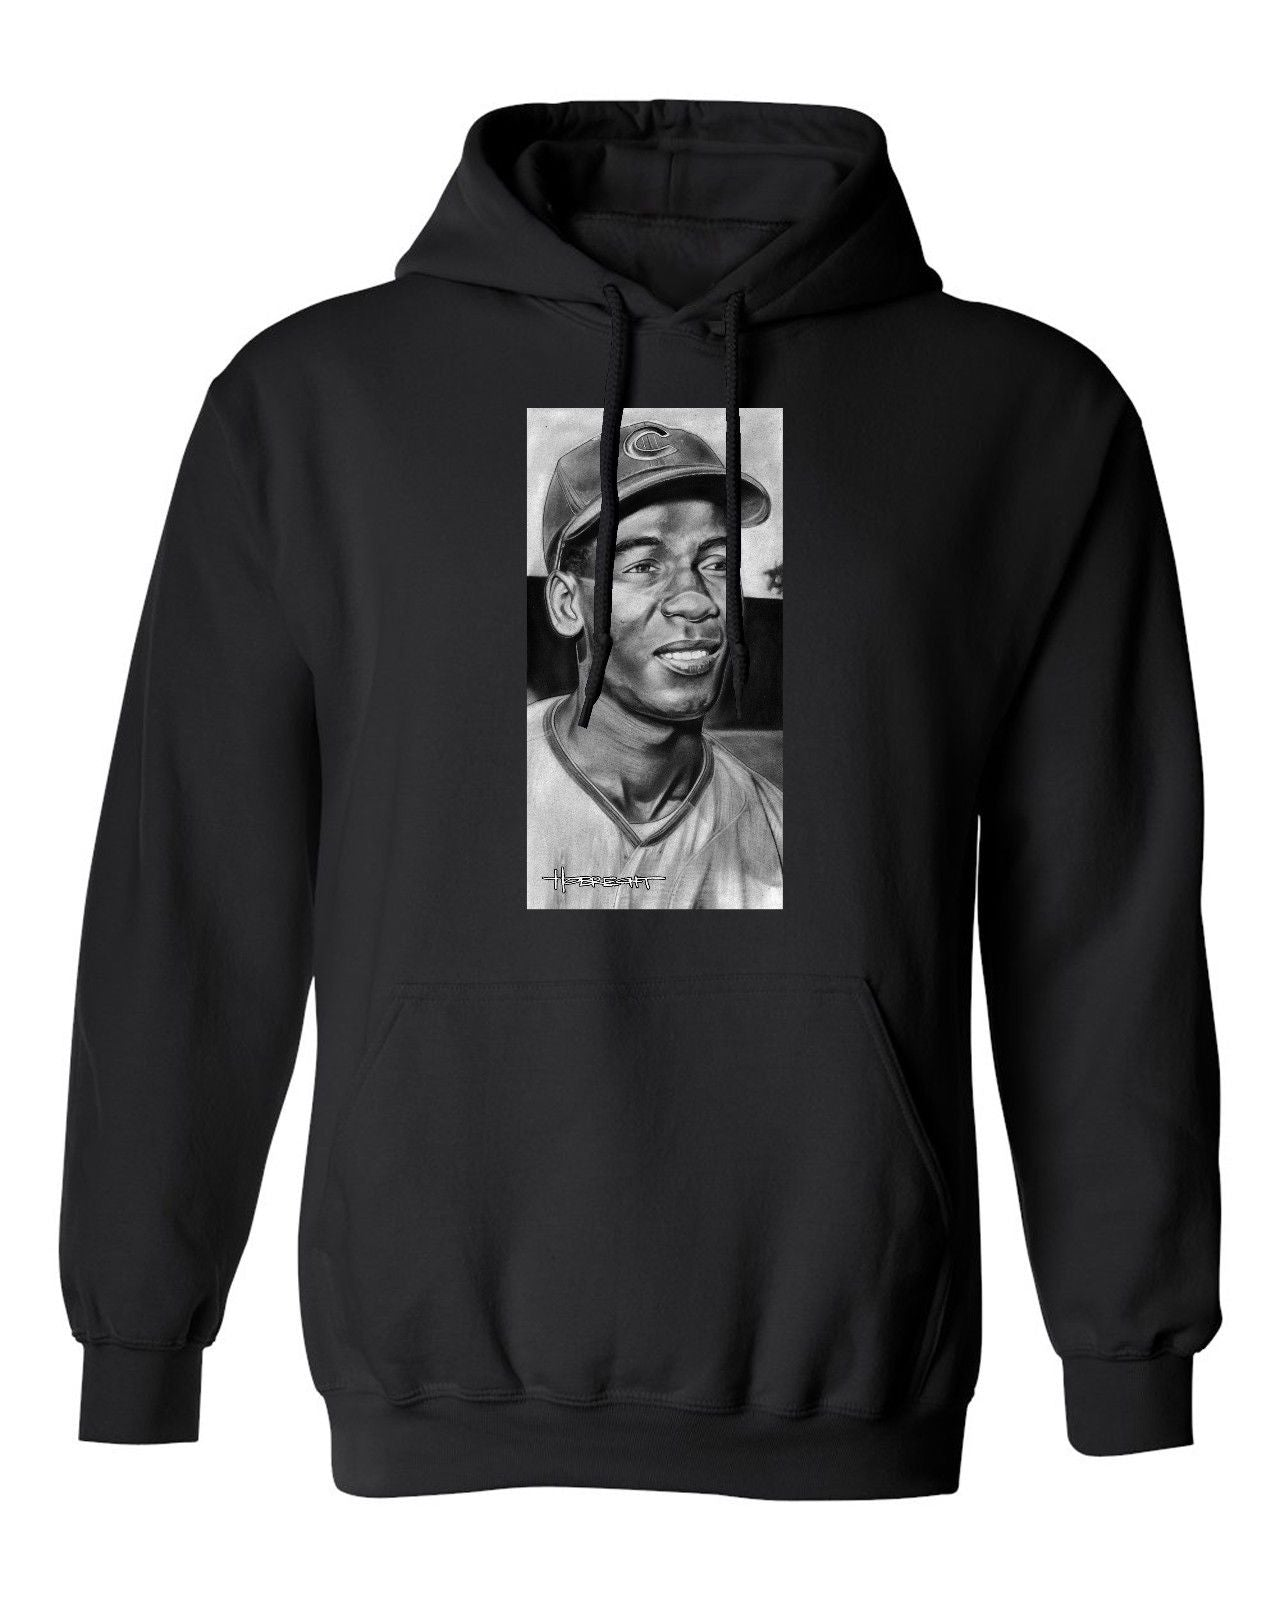 Ernie Banks Chicago Cubs Men's Hoodie Sweatshirt